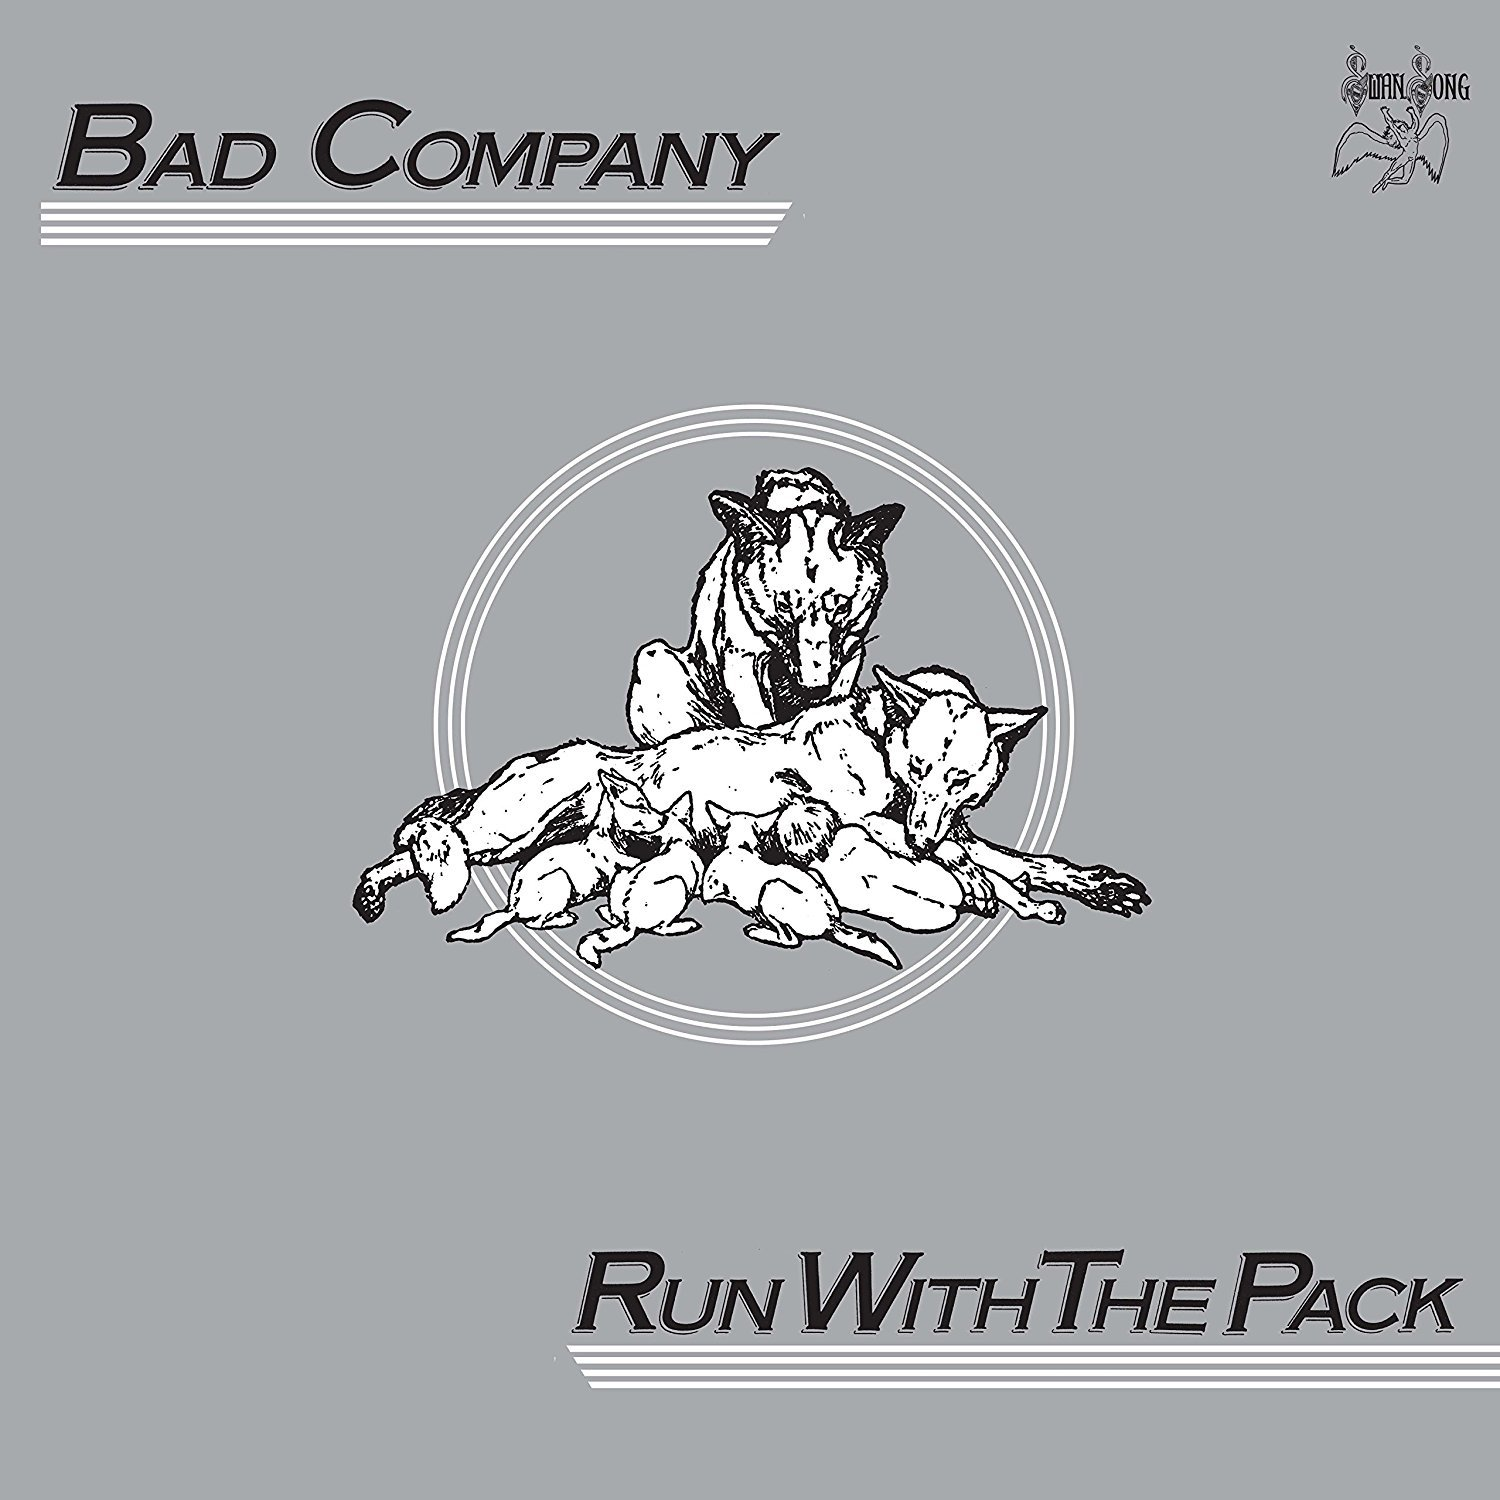 Bad Company - Run With The Pack [Deluxe Edition] (2017) [WEB FLAC] Download